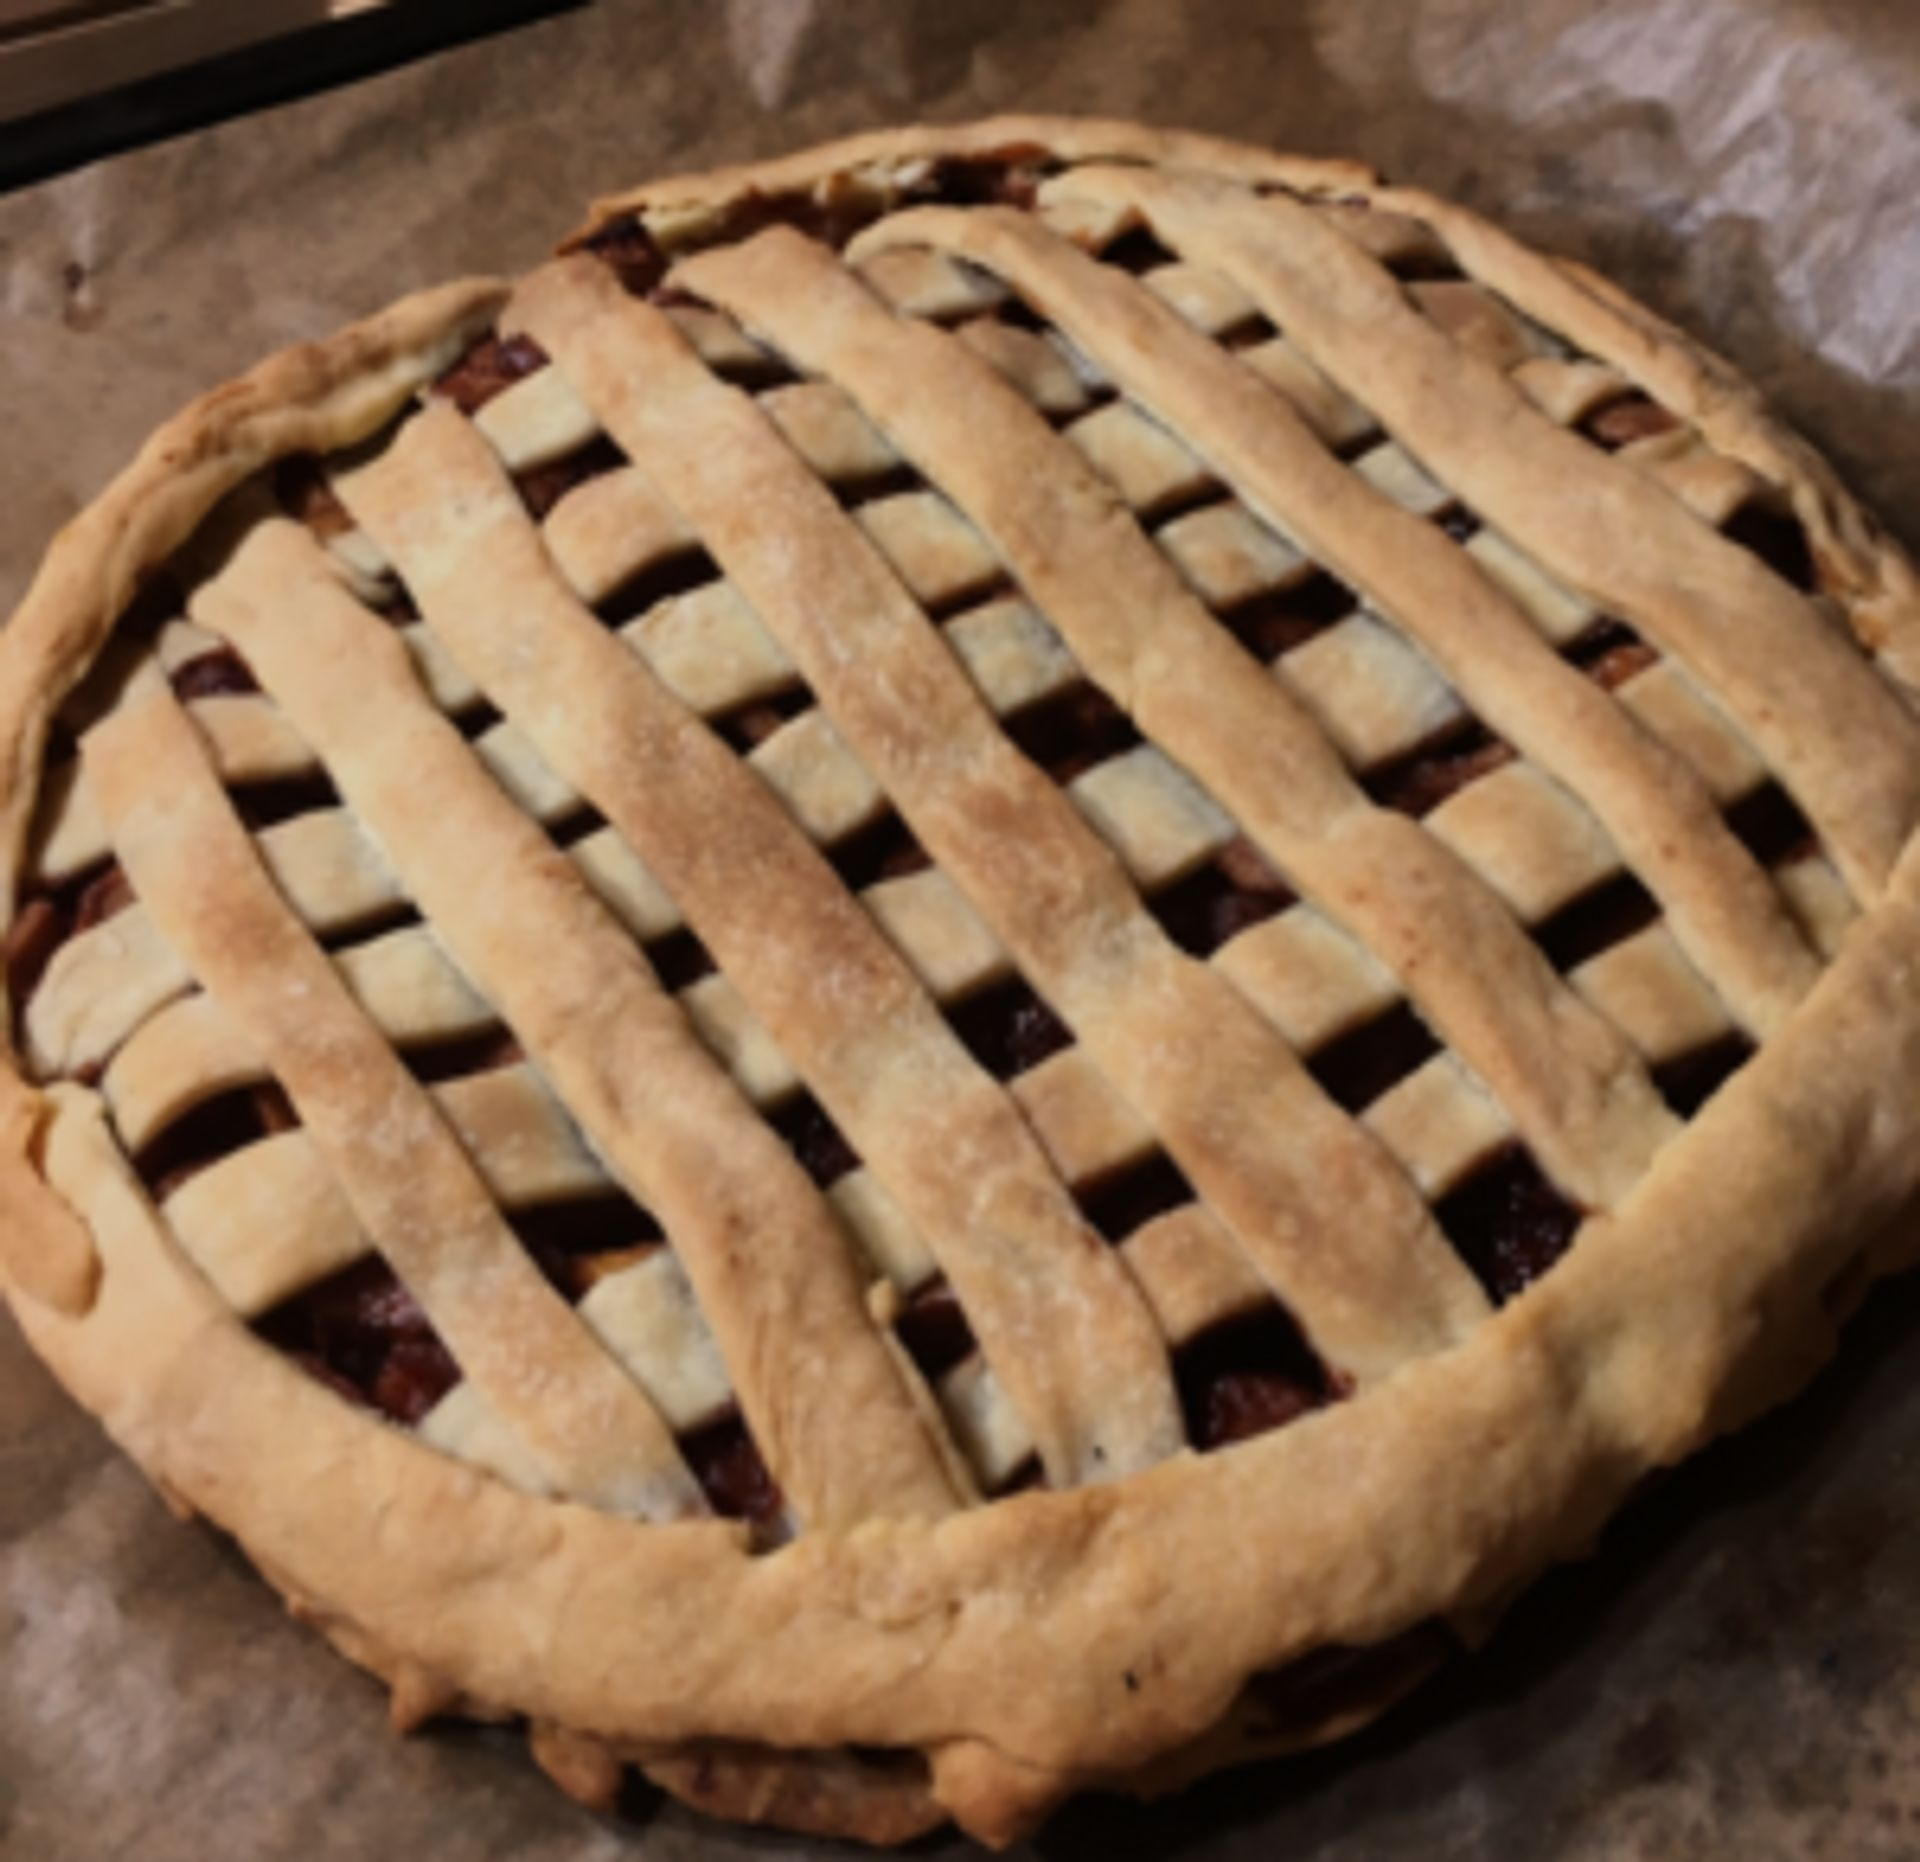 Close-up of a pie.